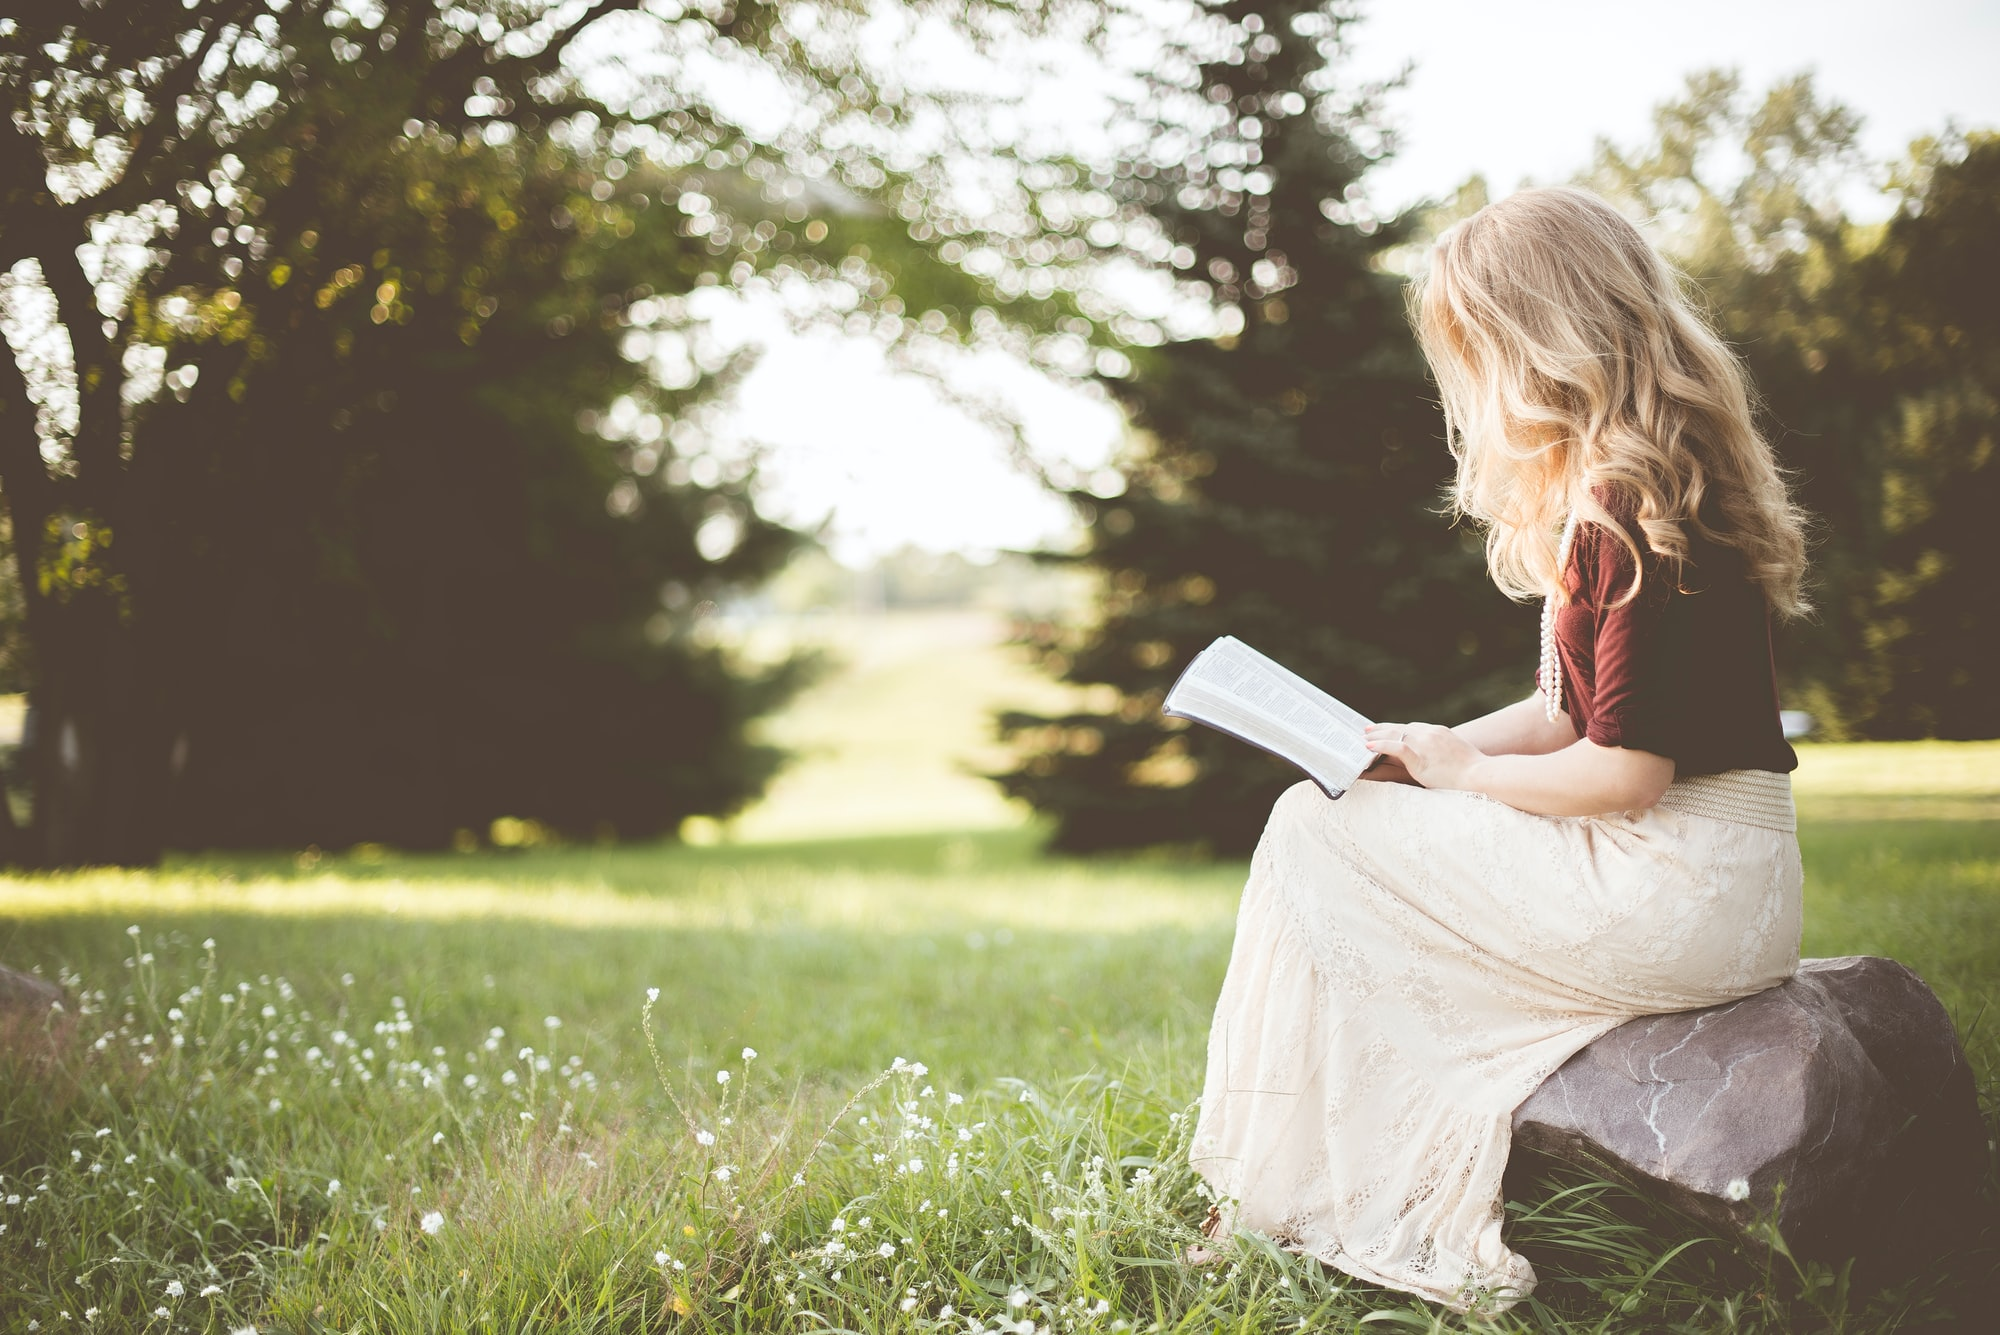 A Year In Read-View 2019 (Books)